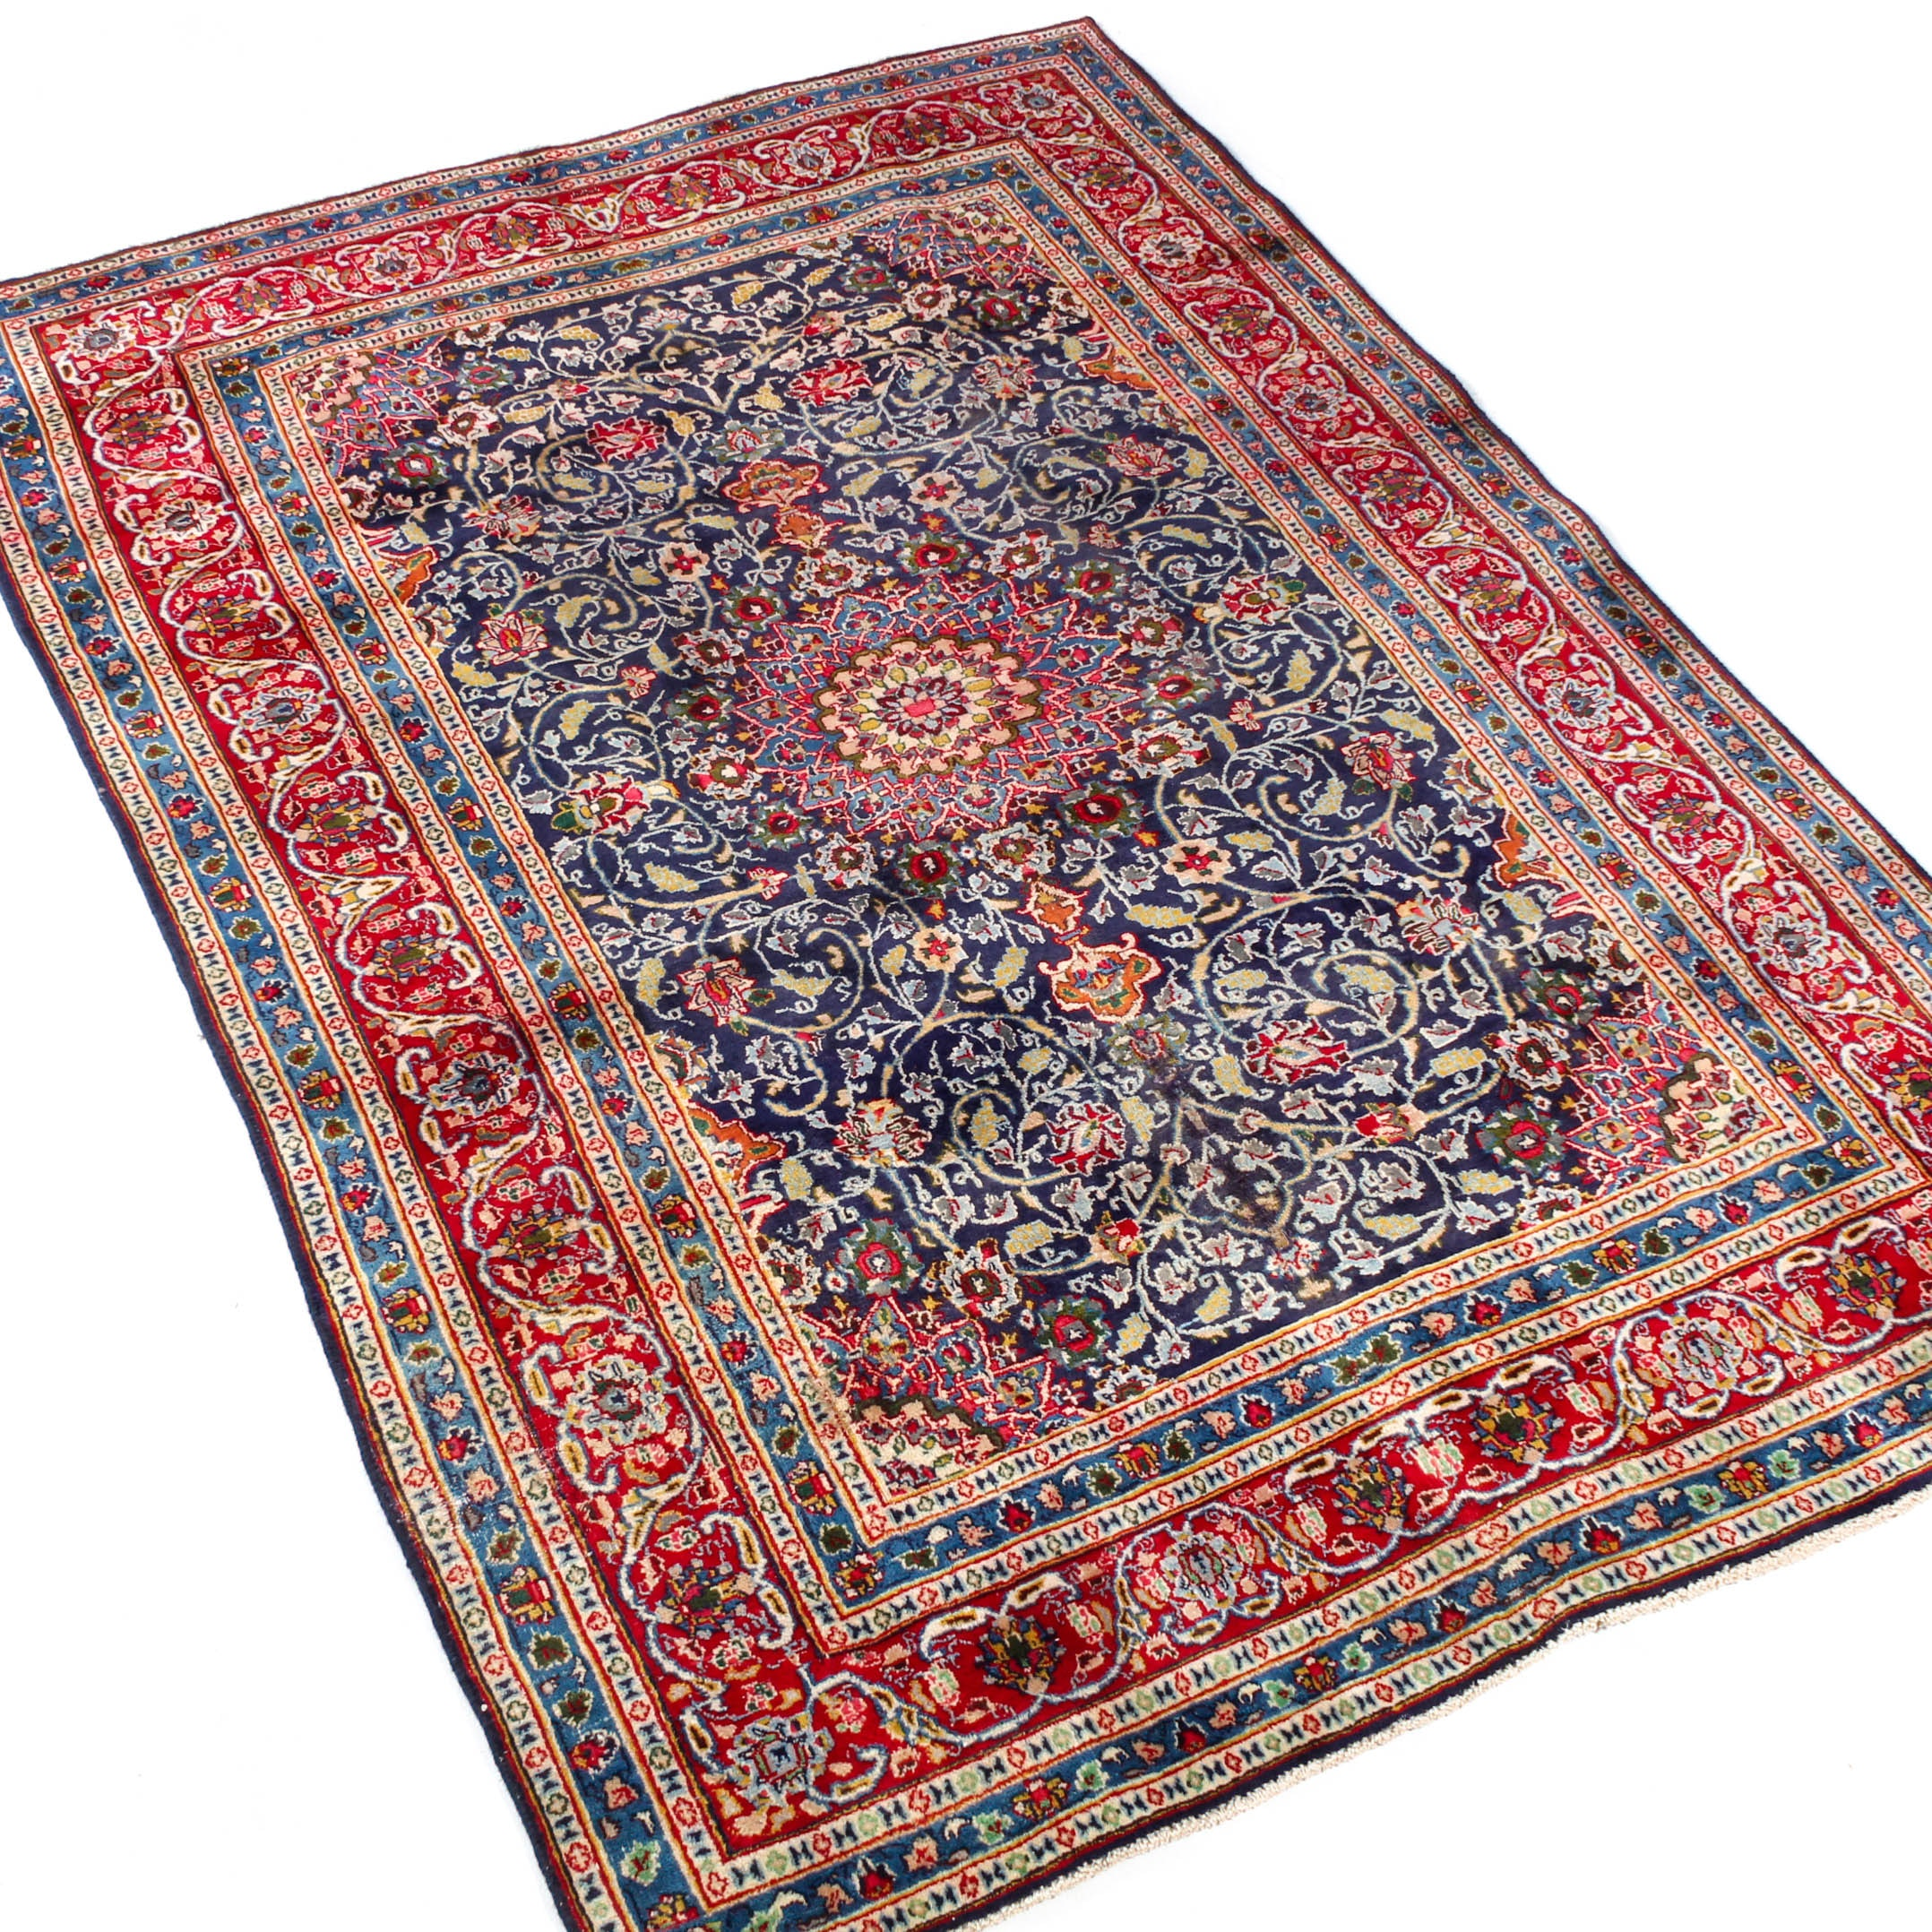 Hand-Knotted Persian Qum Rug, circa 1960